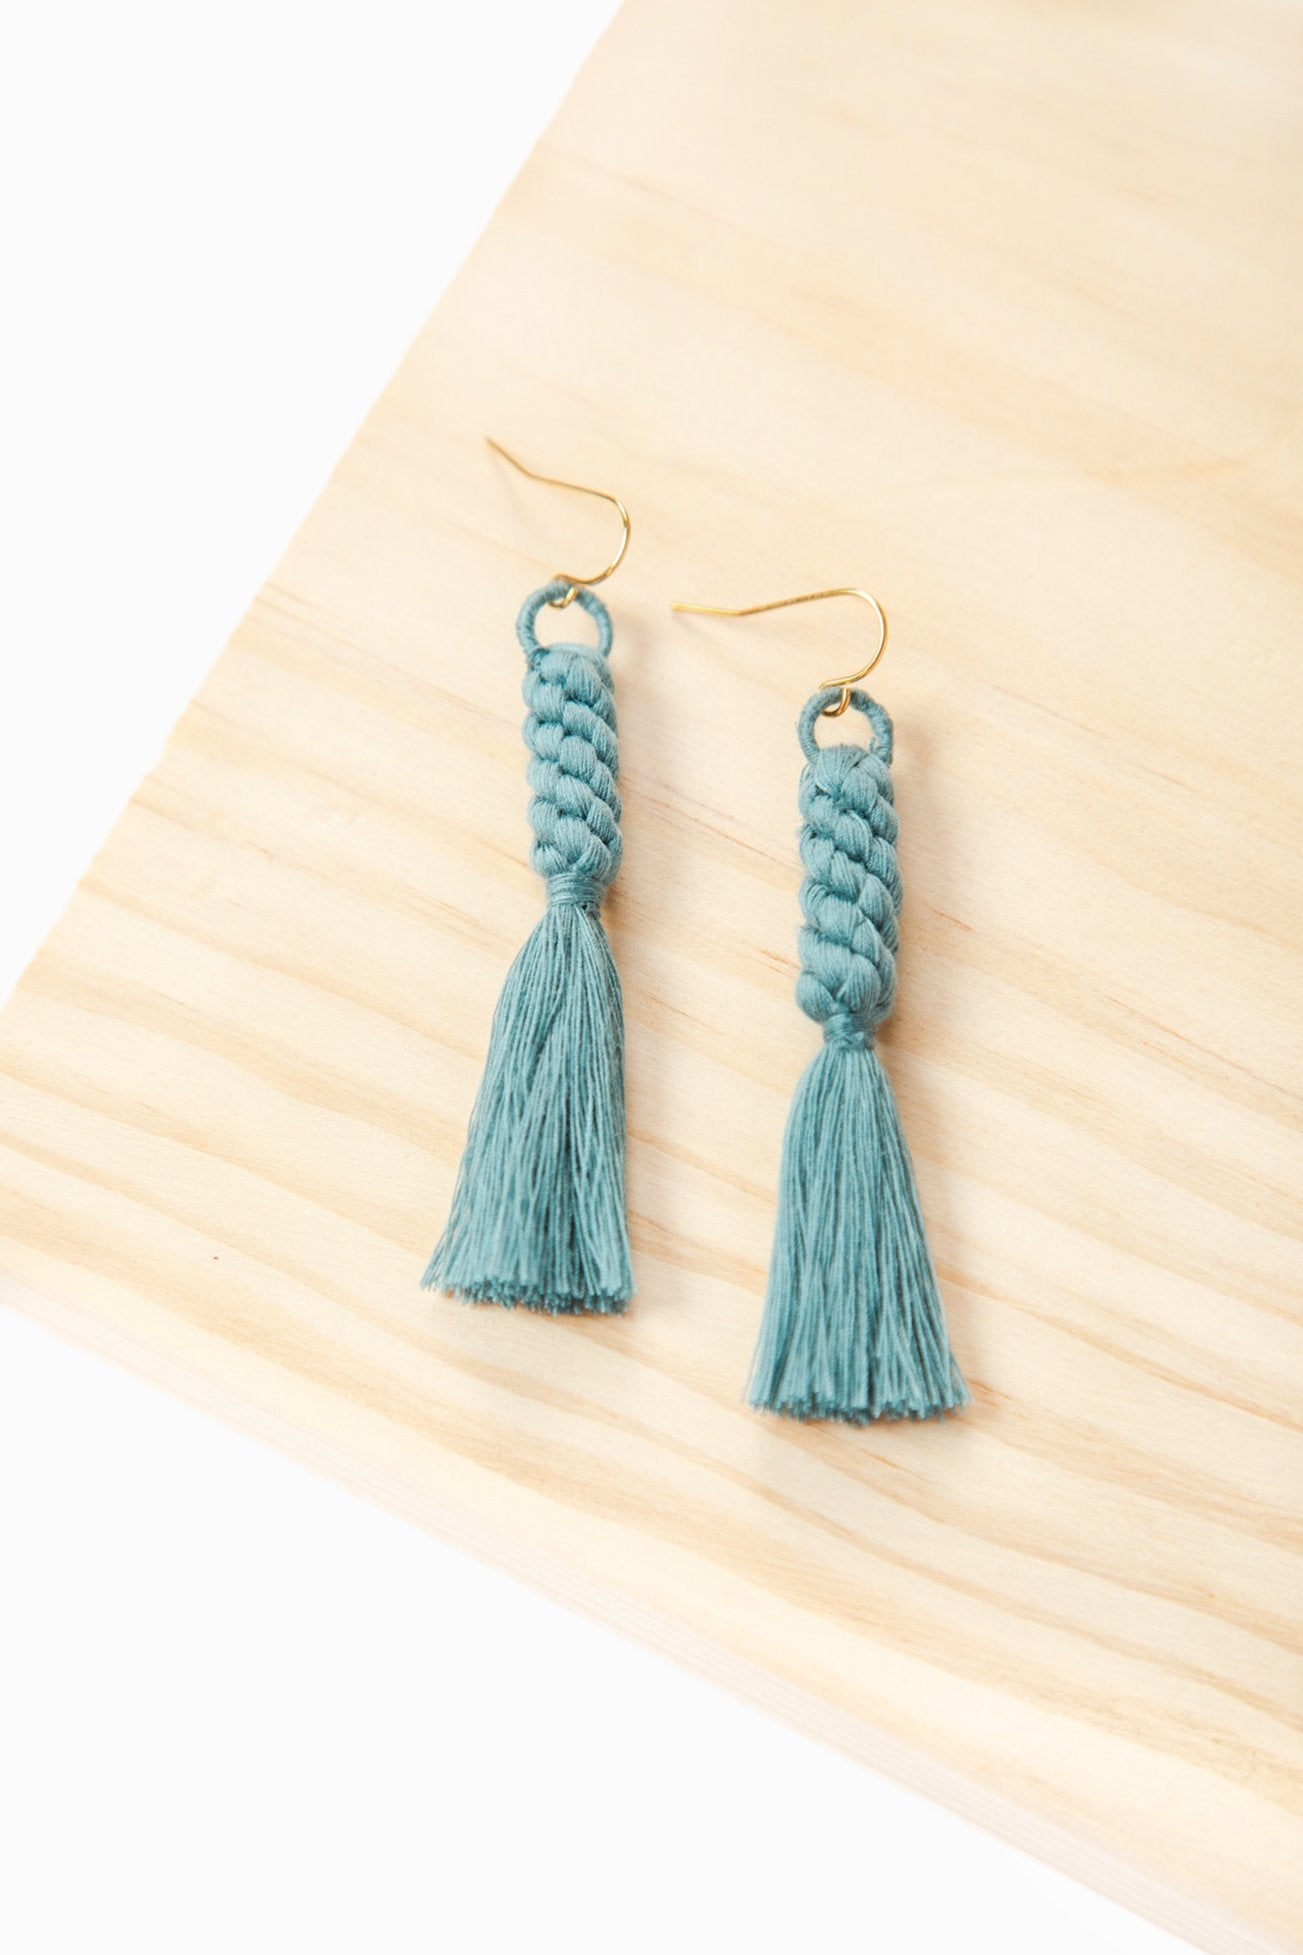 Shan Braid Earrings - Dusty Blue - Our Barehands